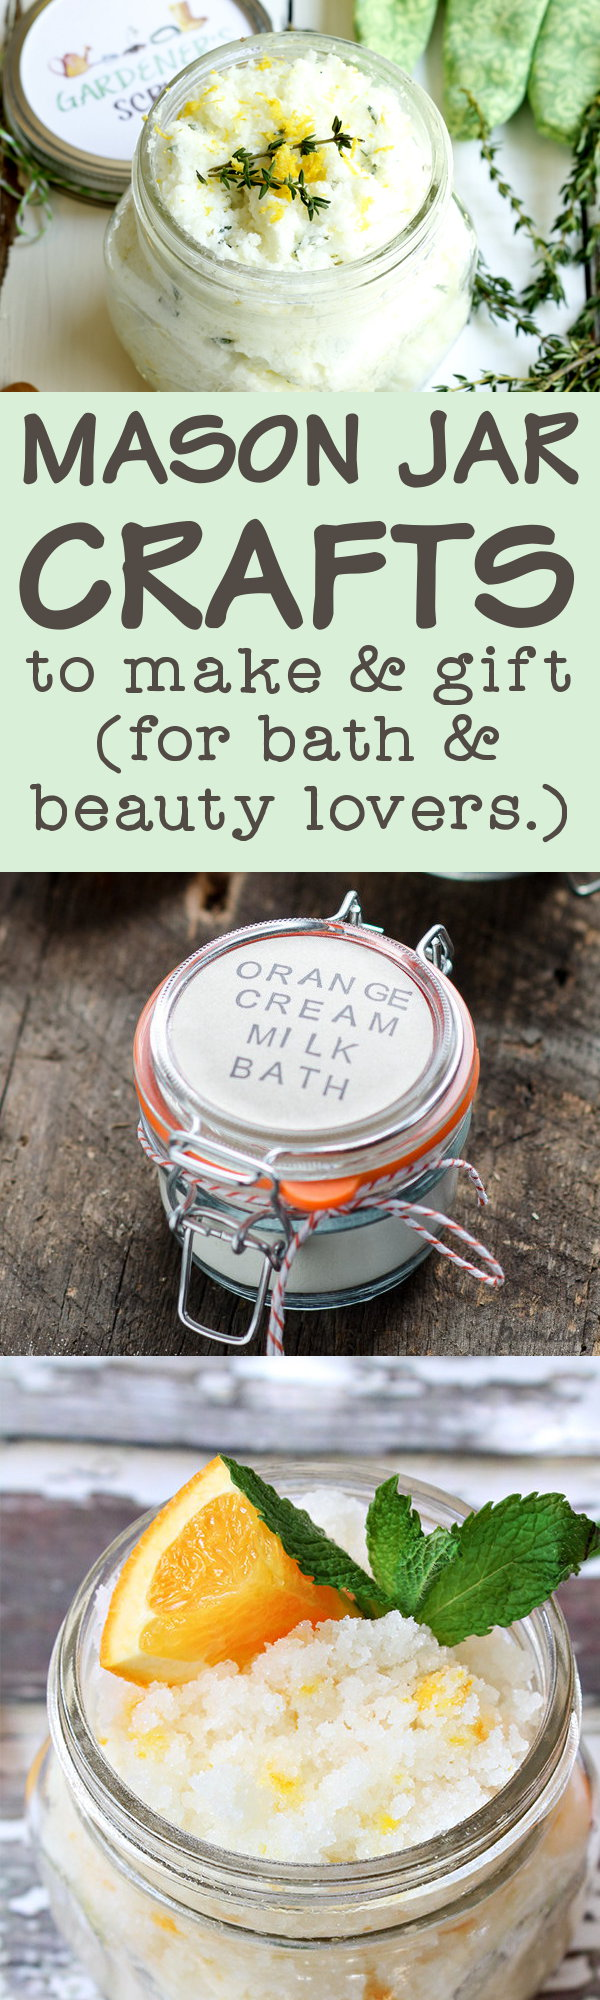 Mason Jar Crafts for Bath & Beauty Lovers! Try one of these 40+ beautiful mason jar crafts for bath & beauty lovers for a fun weekend project the entire family can enjoy! Or make them for last minute DIY gift ideas for friends and family! #masonjarcrafts #bath #beauty #diy #crafts #gifts #giftideas